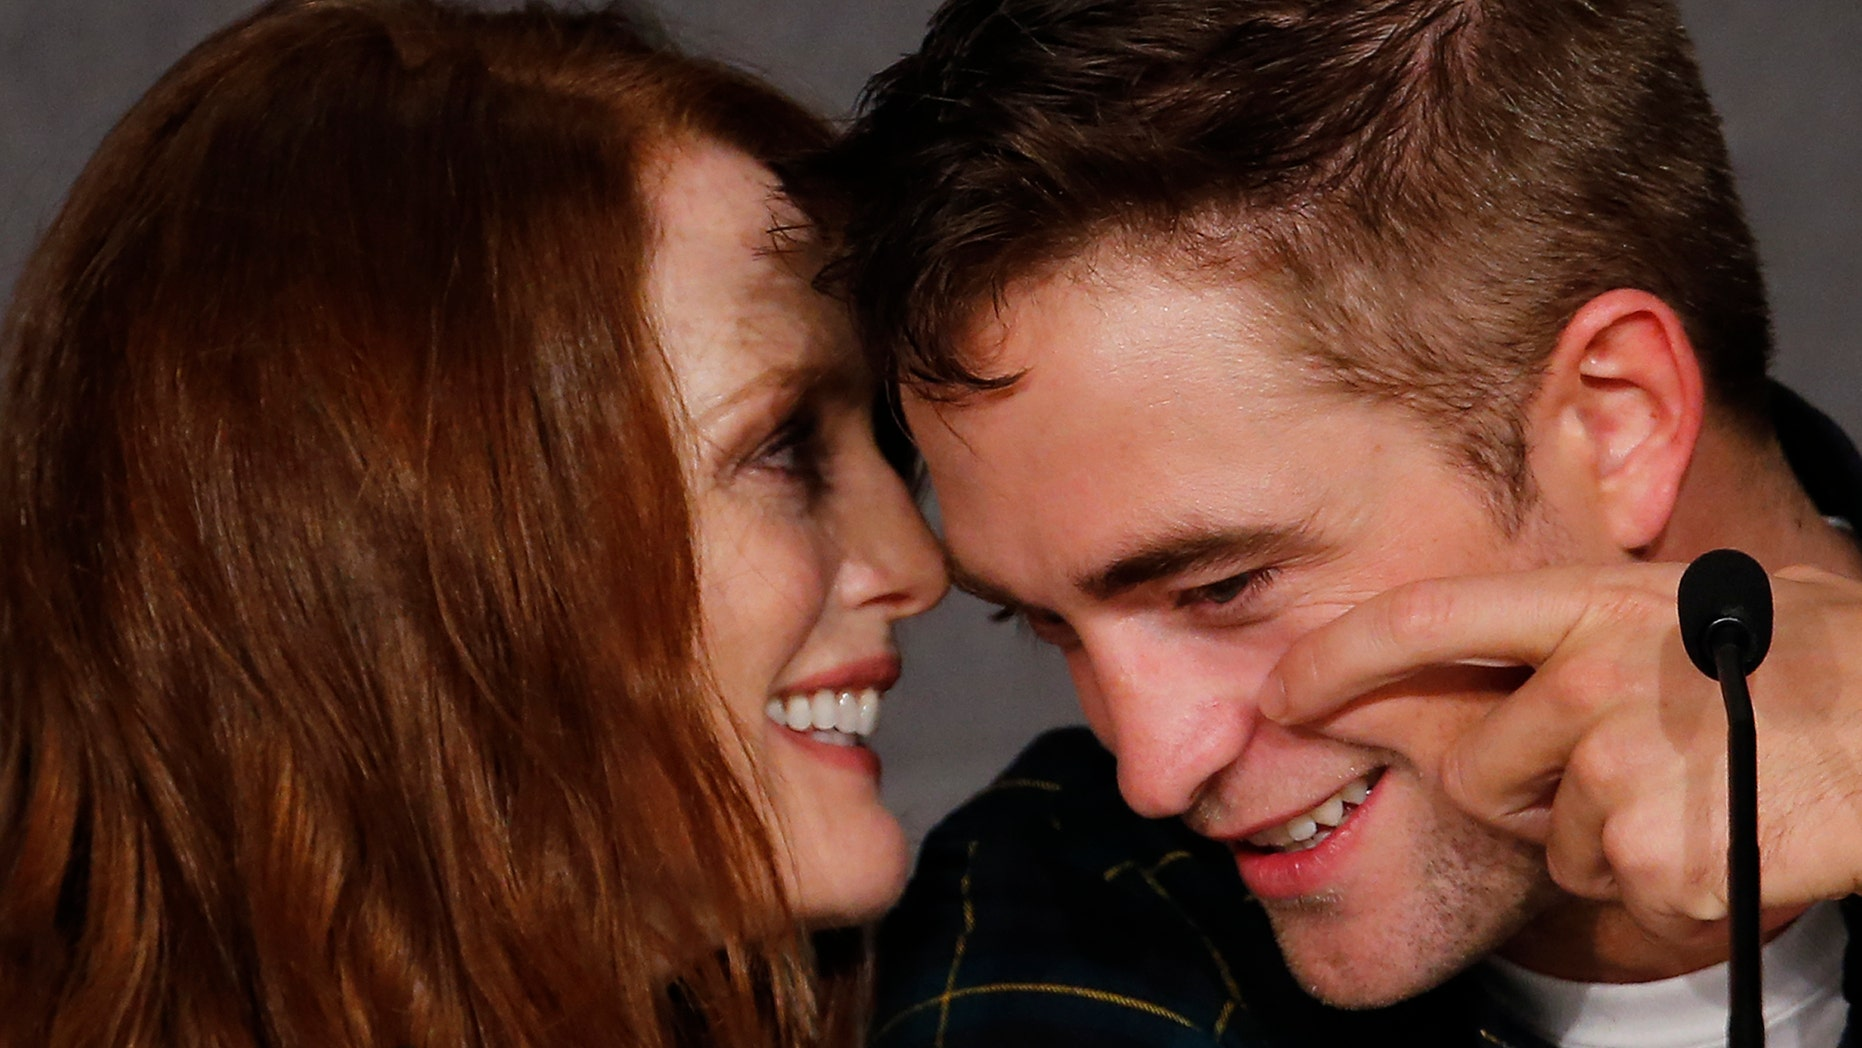 """May 19, 2014. Cast members Robert Pattinson (R) and Julianne Moore attend a news conference for the film """"Maps to the Stars"""" in competition at the 67th Cannes Film Festival in Cannes."""